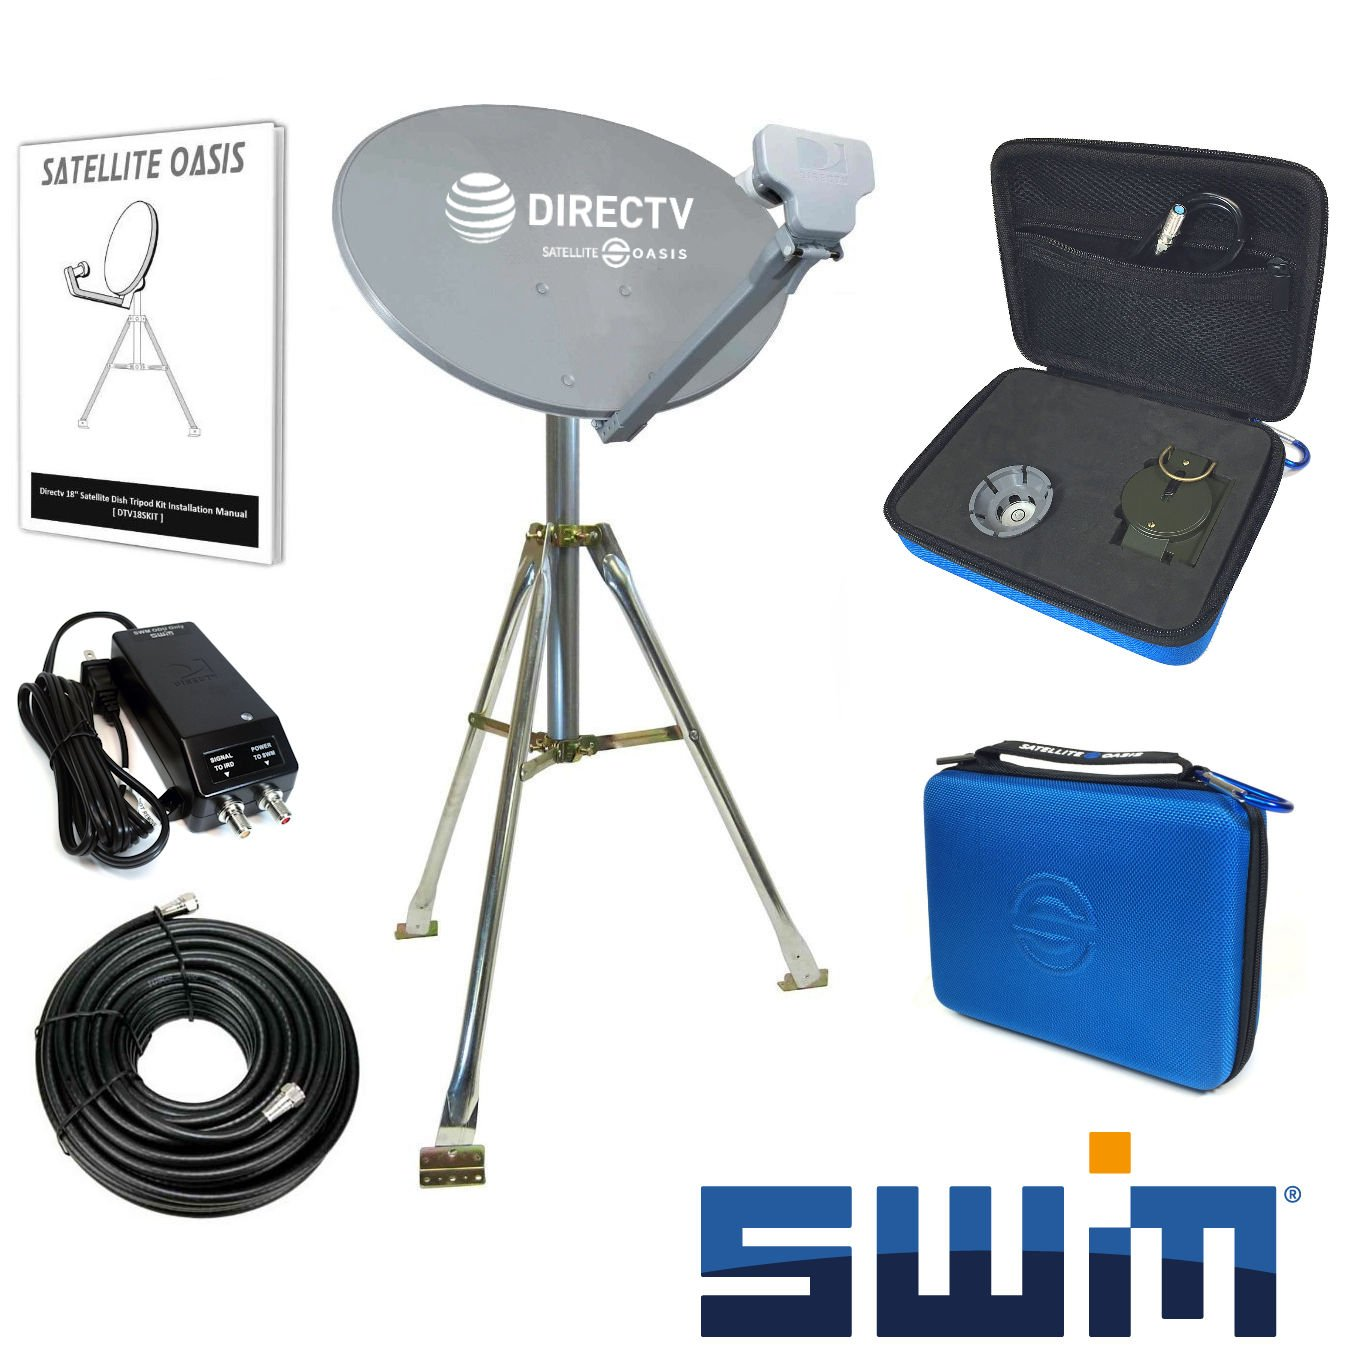 71Q2 4uWEnL._SL1370_ amazon com directv swim mobile rv portable satellite dish tripod direct tv satellite dish wiring diagram at mifinder.co